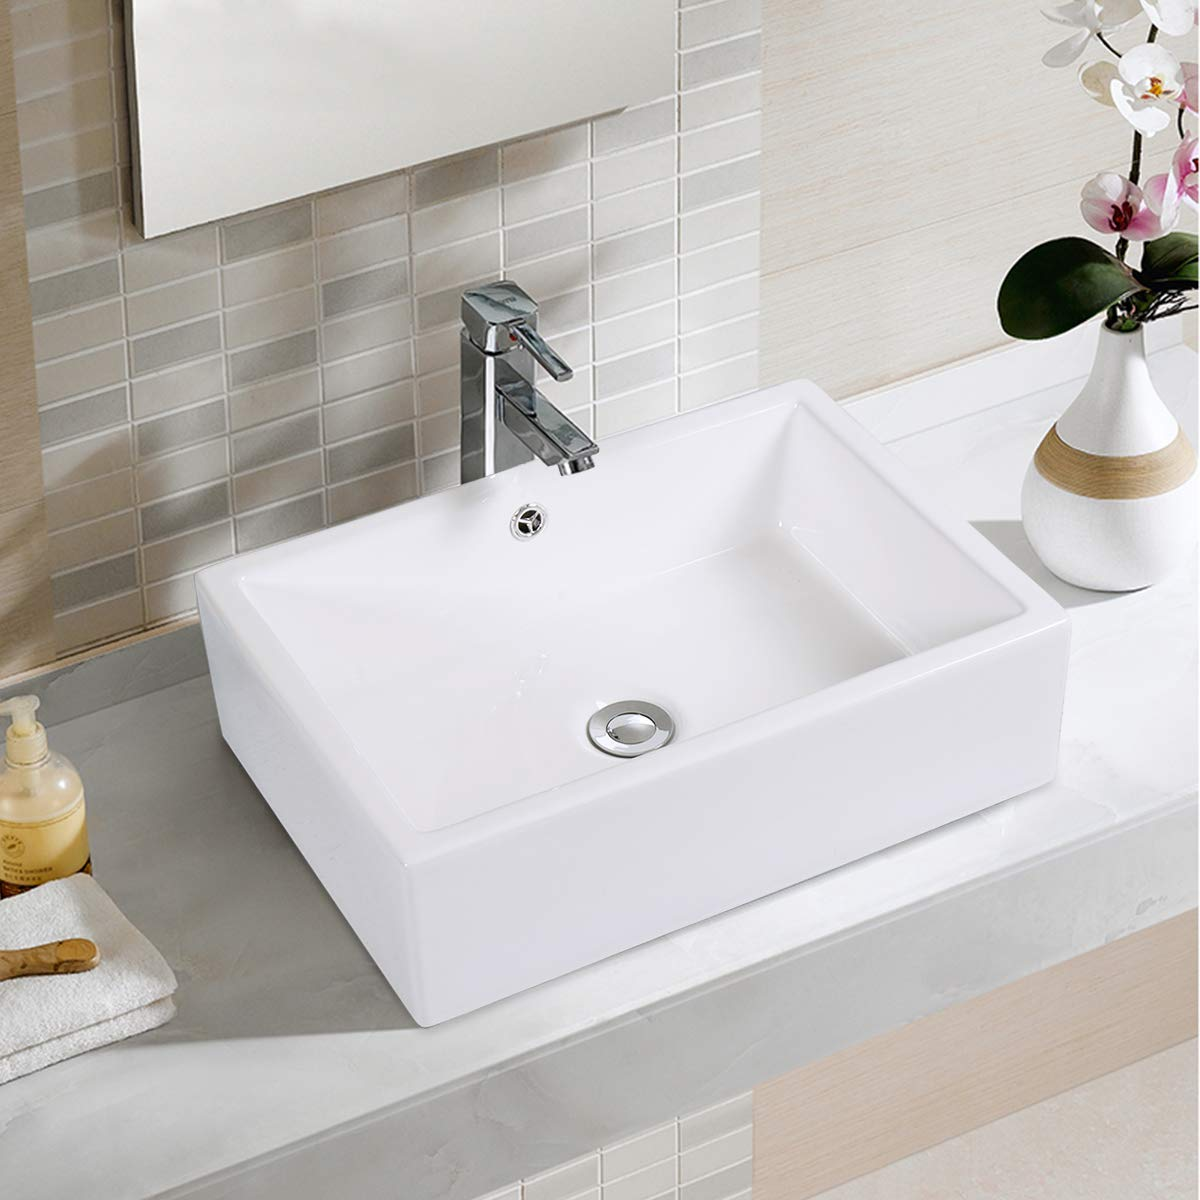 Giantex 20-Inch Bathroom Rectangle Ceramic Vessel Sink Vanity Pop Up Drain Art Basin